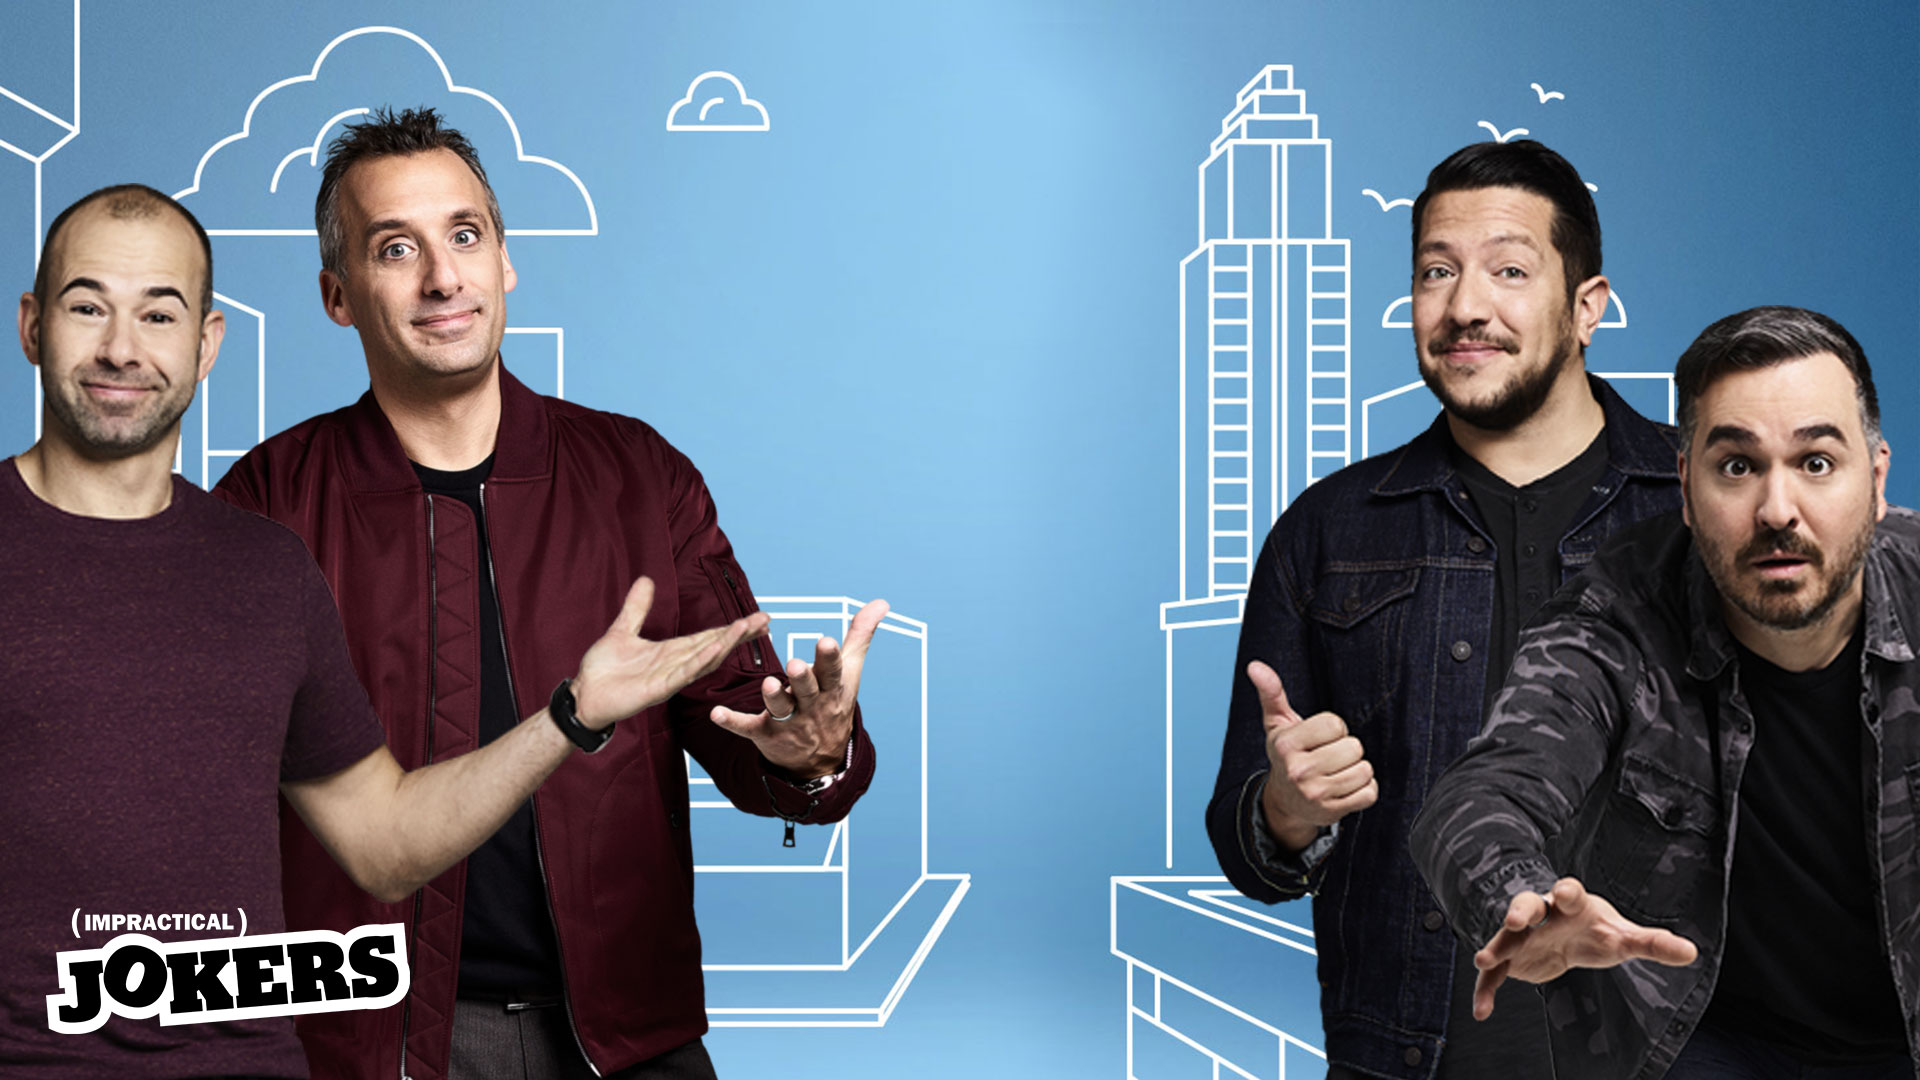 Impractical Jokers background